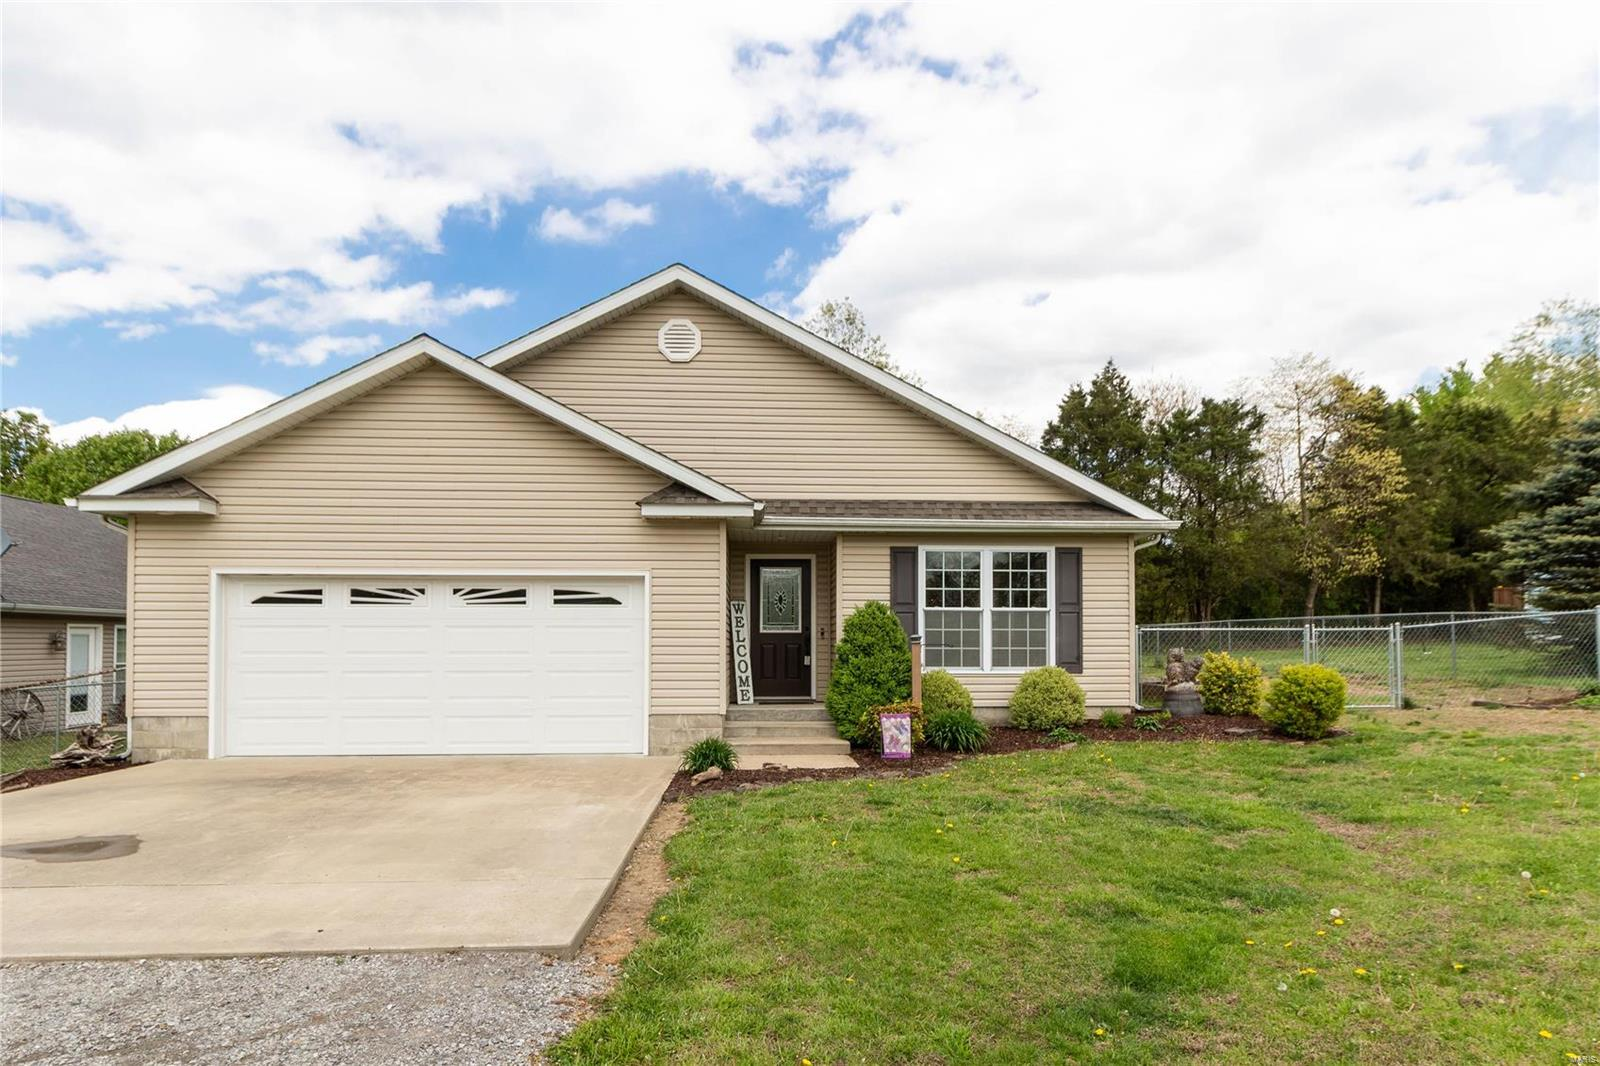 703 Mulberry Property Photo - Goreville, IL real estate listing